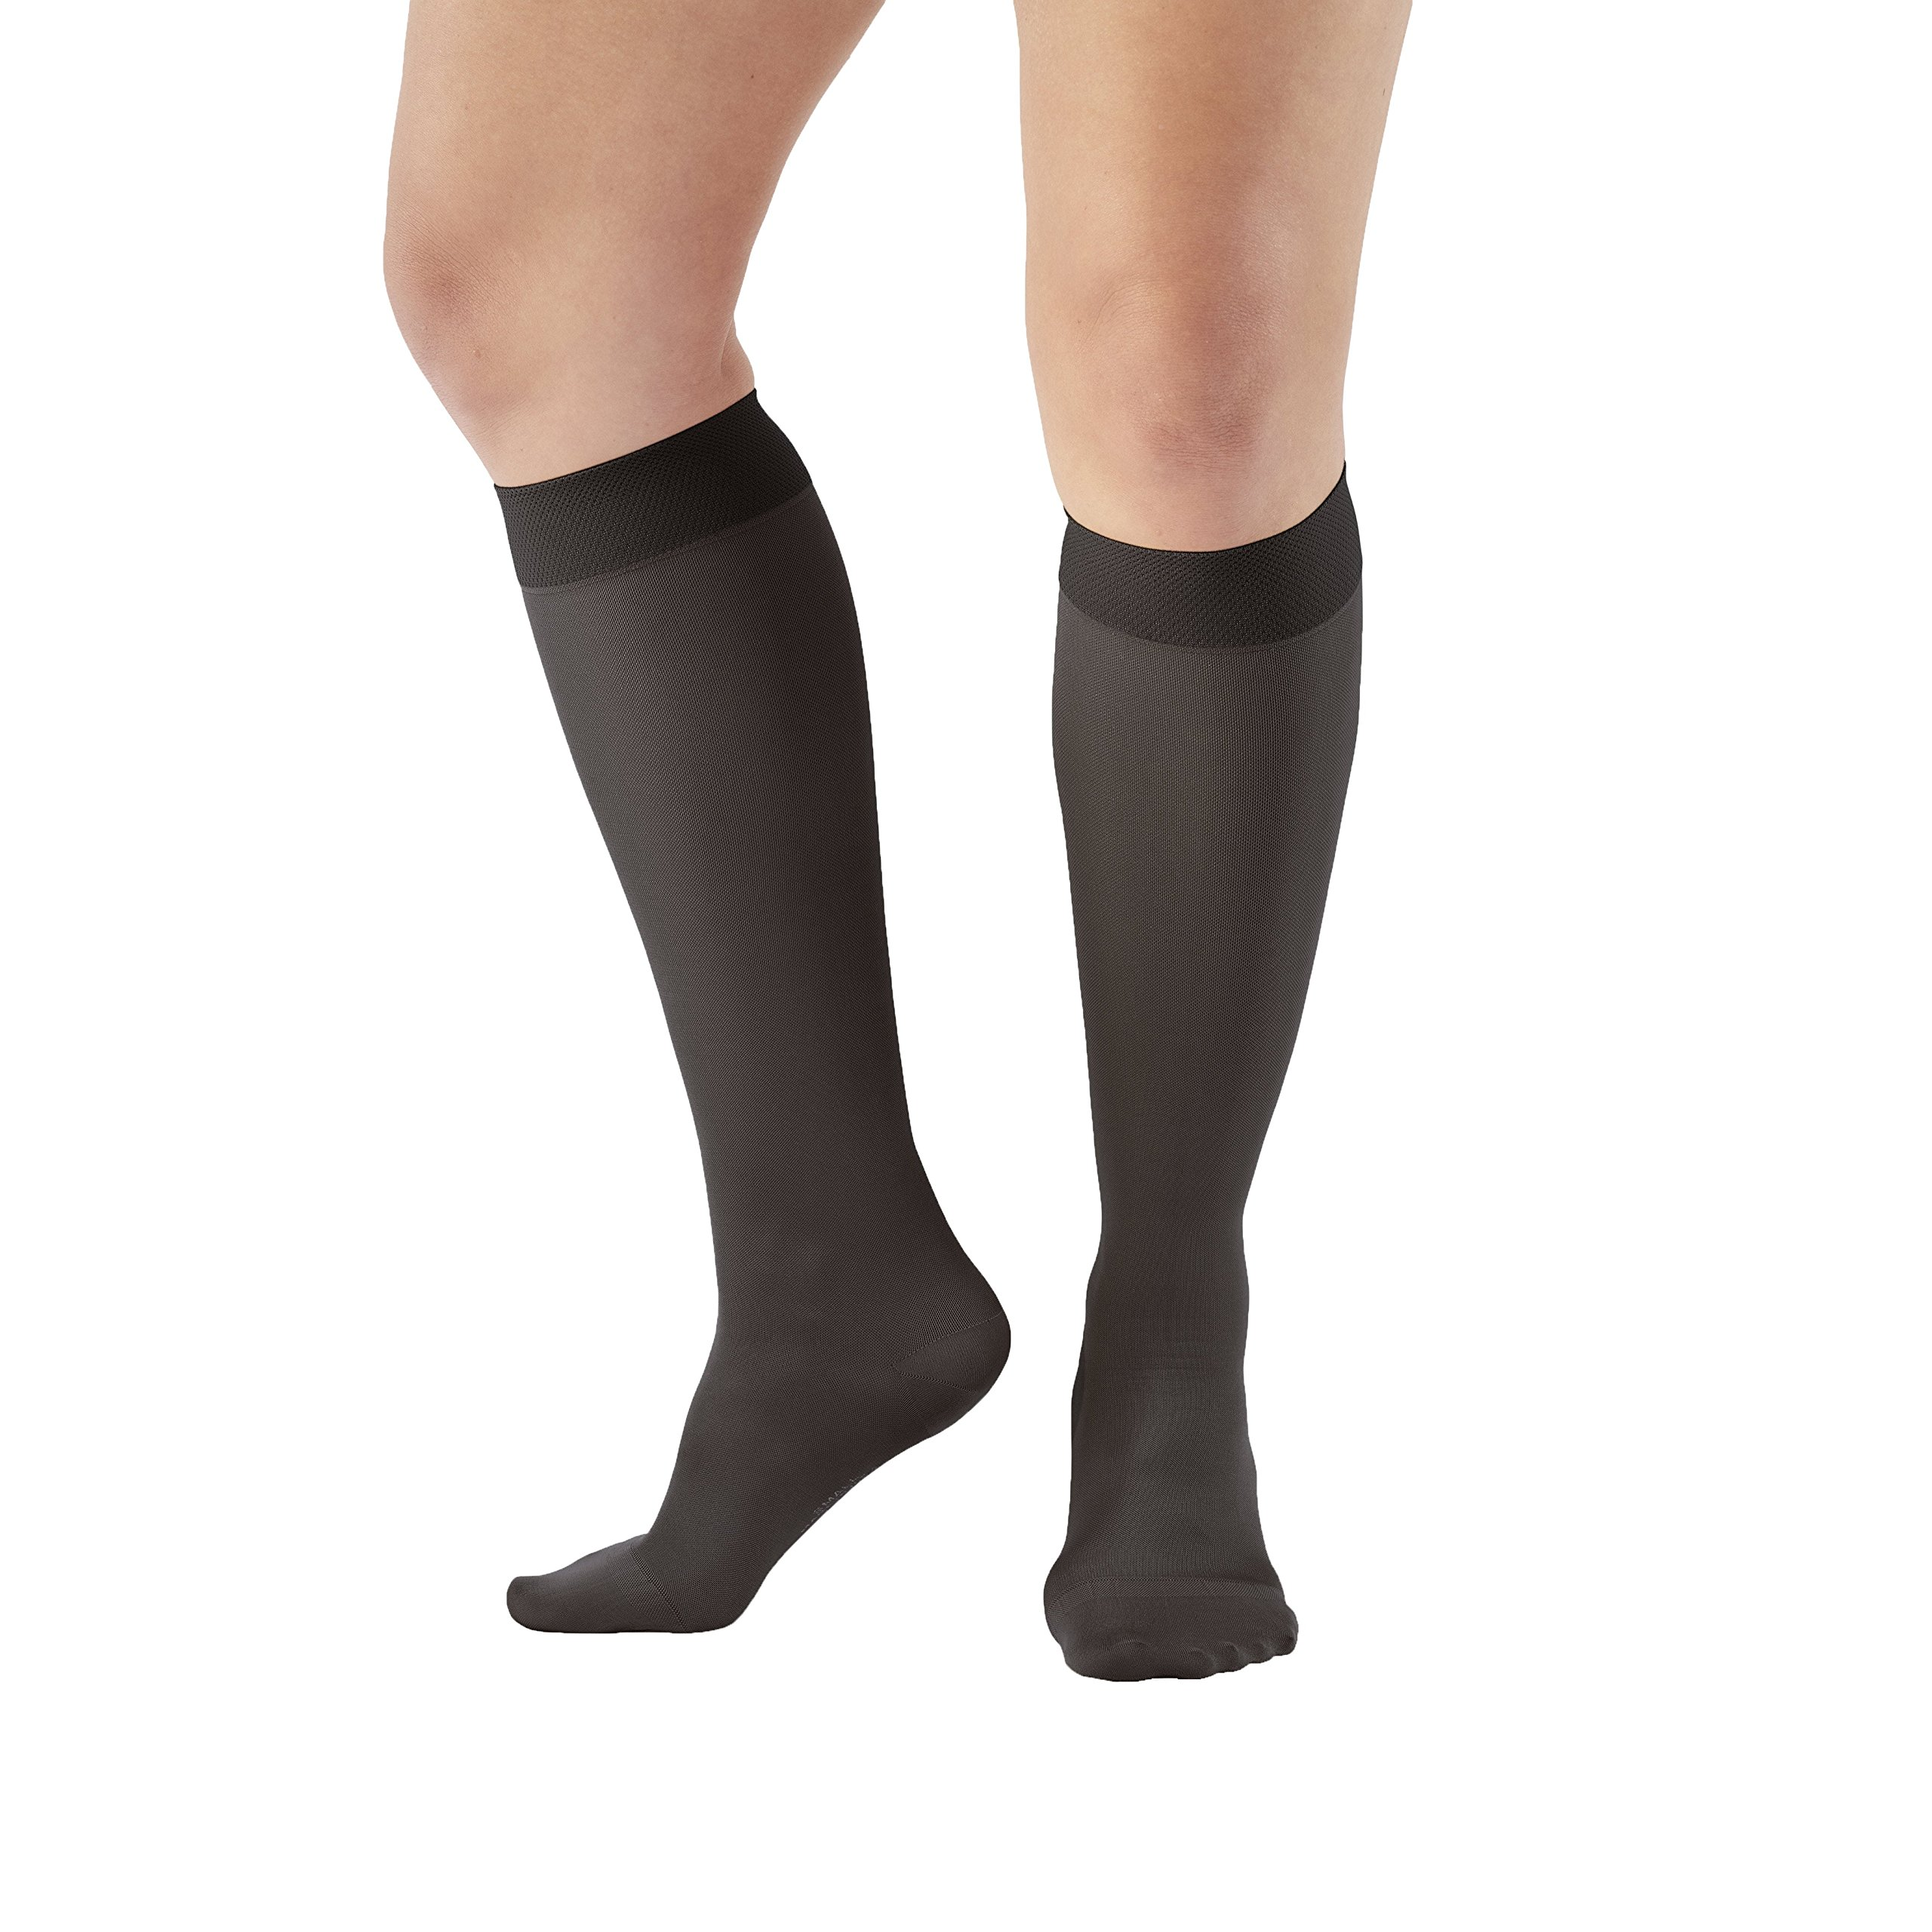 Ames Walker Unisex AW Style 209 Microfiber Opaque Closed Toe Compression Knee